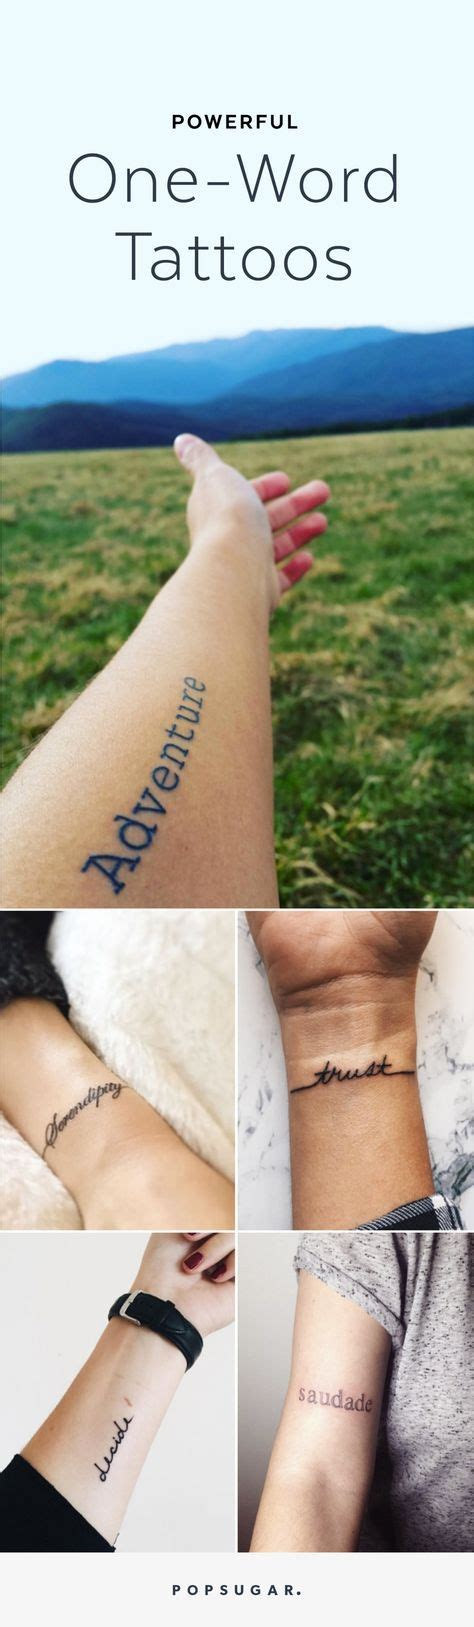 single word tattoos 1000 ideas about one word tattoos on simple